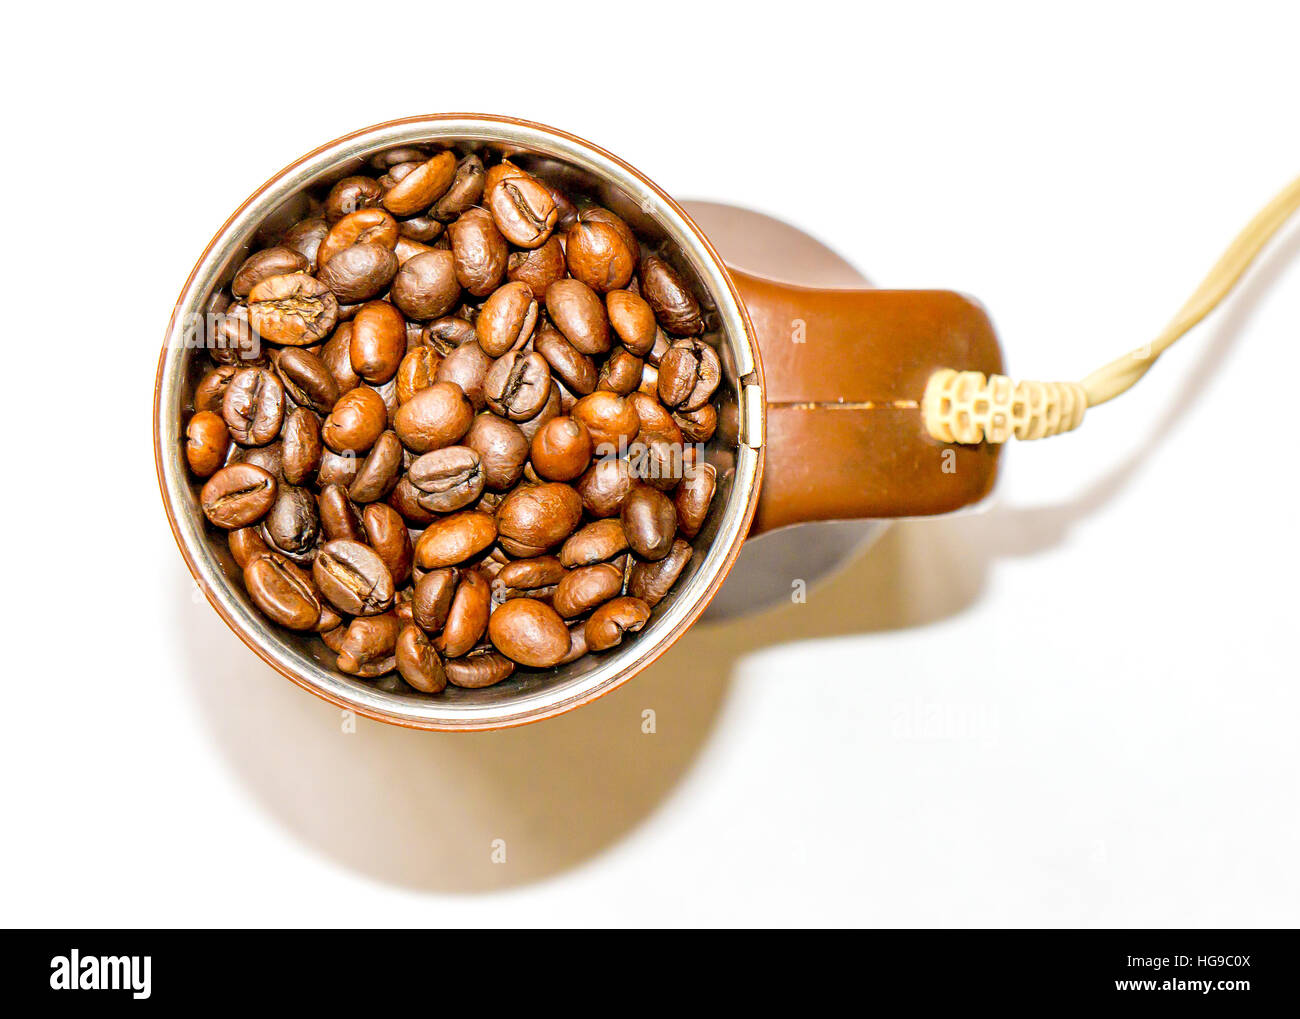 The brown coffee mill isolated. - Stock Image